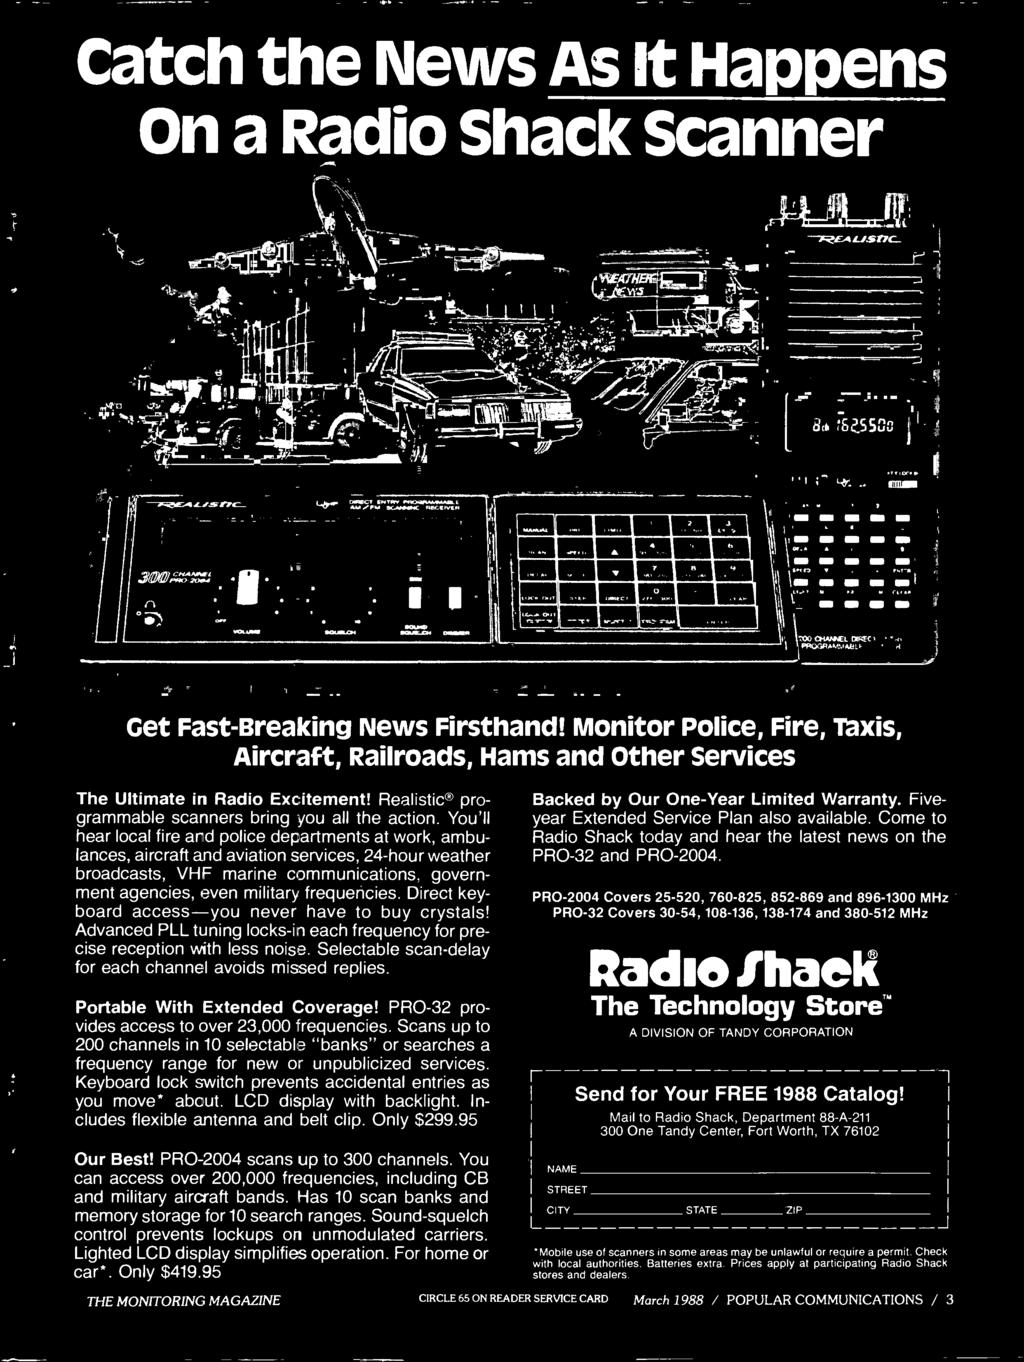 Take Your Scanner To The Races Pdf Telephone Wiring Block Radio Shack Selectable Scan Delay For Each Channel Avoids Missed Replies Portable With Extended Coverage